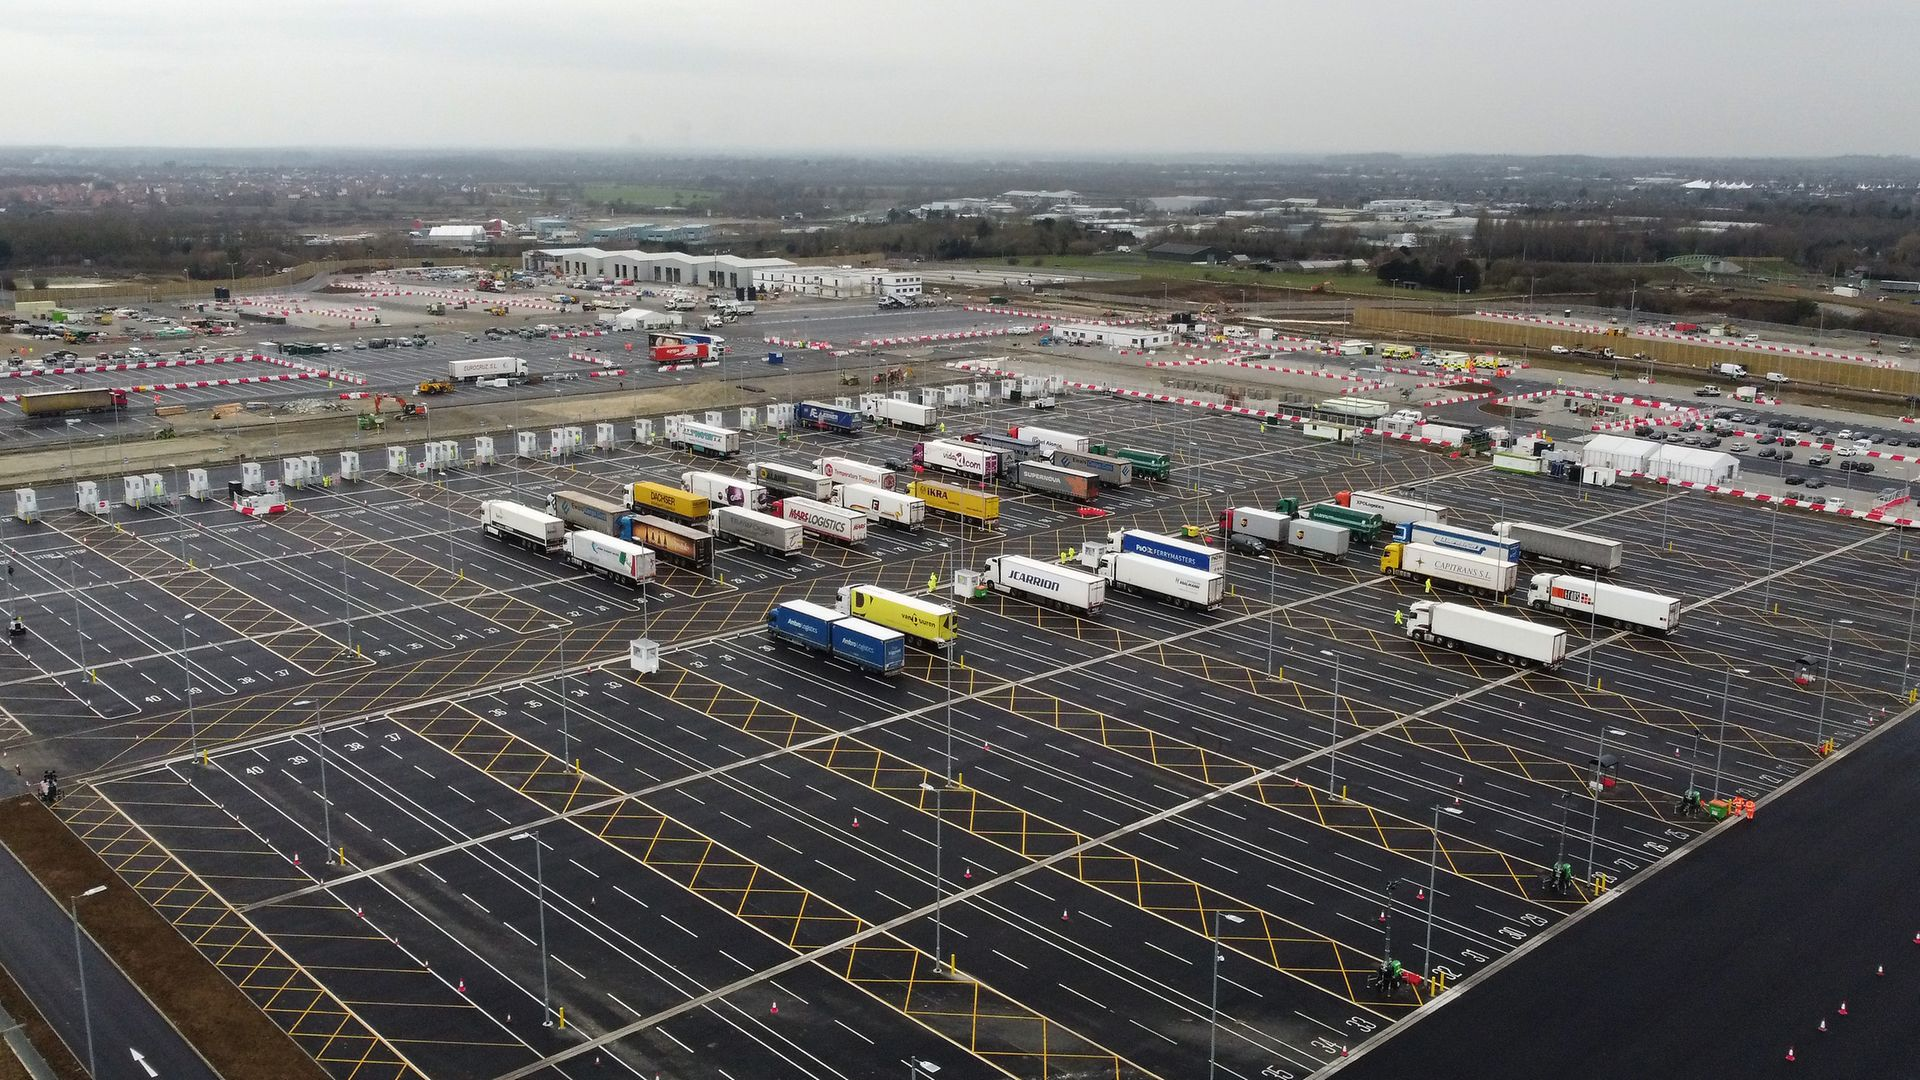 A view of the Sevington Inland Border Facility in Ashford, Kent, as the government continues to develop a 27-acre site into a post-Brexit lorry park